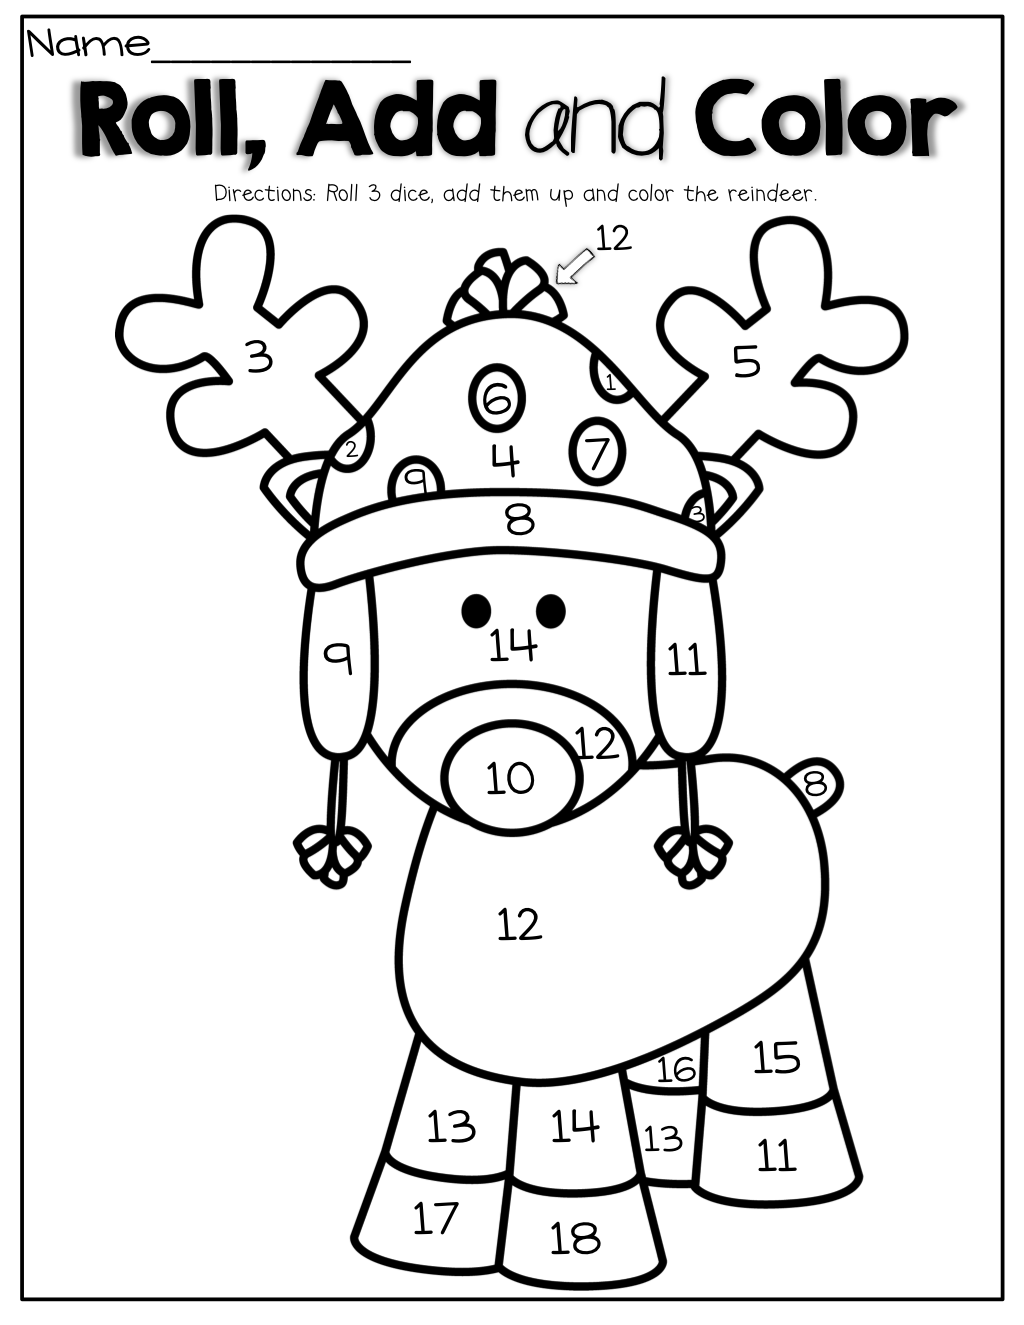 Roll 3 Dice Add Them Up And Color The Reindeer What A Fun And Interactive Way To Practice